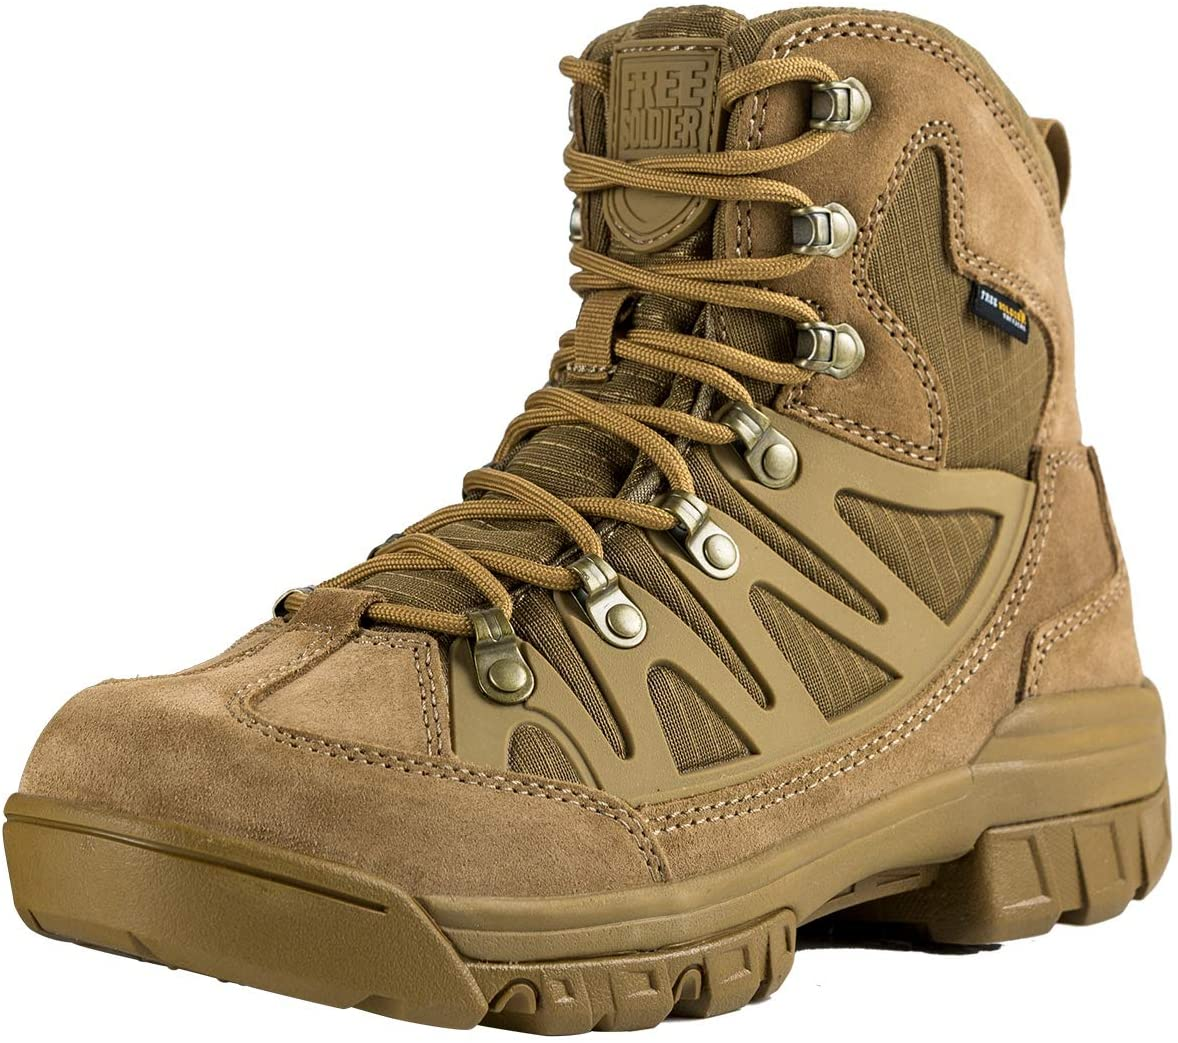 Image of a coyote brown tactical boot, metal lace hoops with crossed laces on a white background.